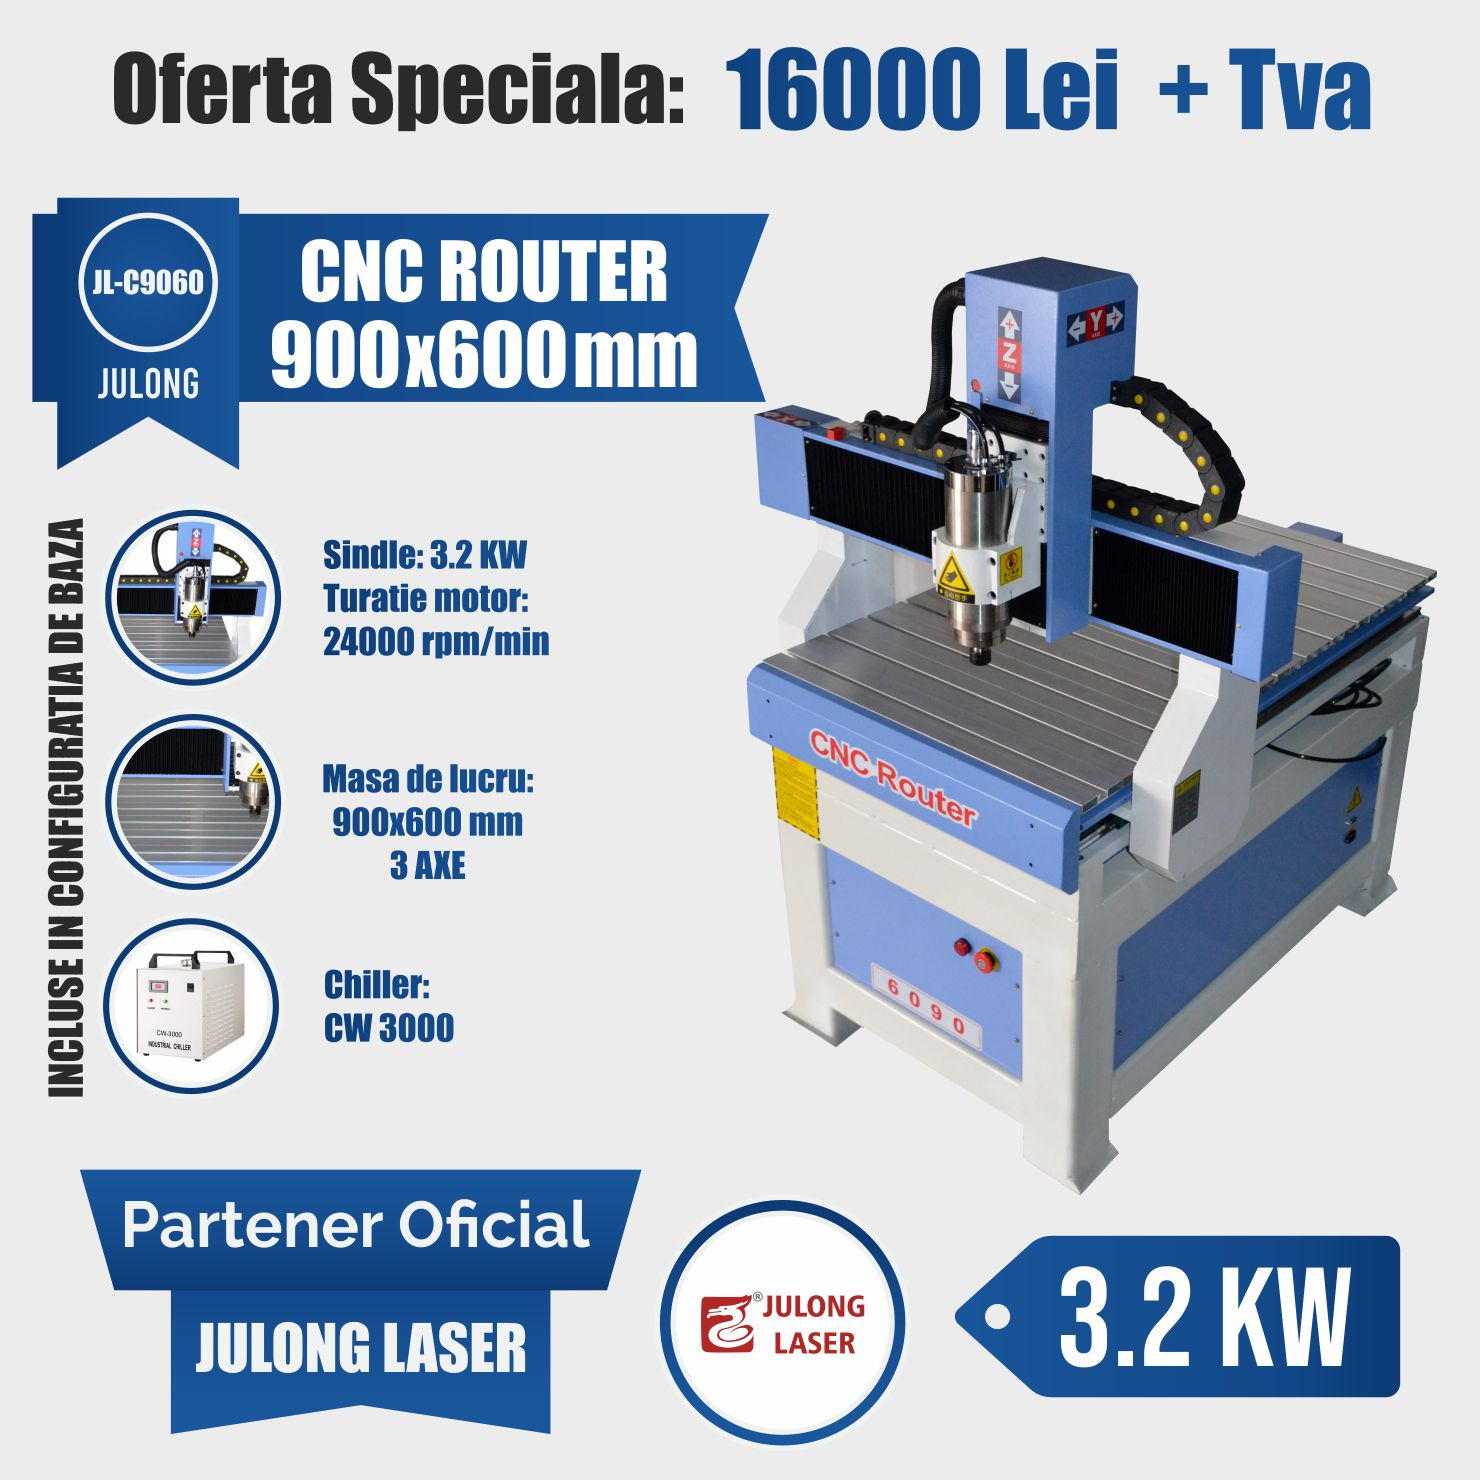 CNC Router 900x600 mm 3.2KW